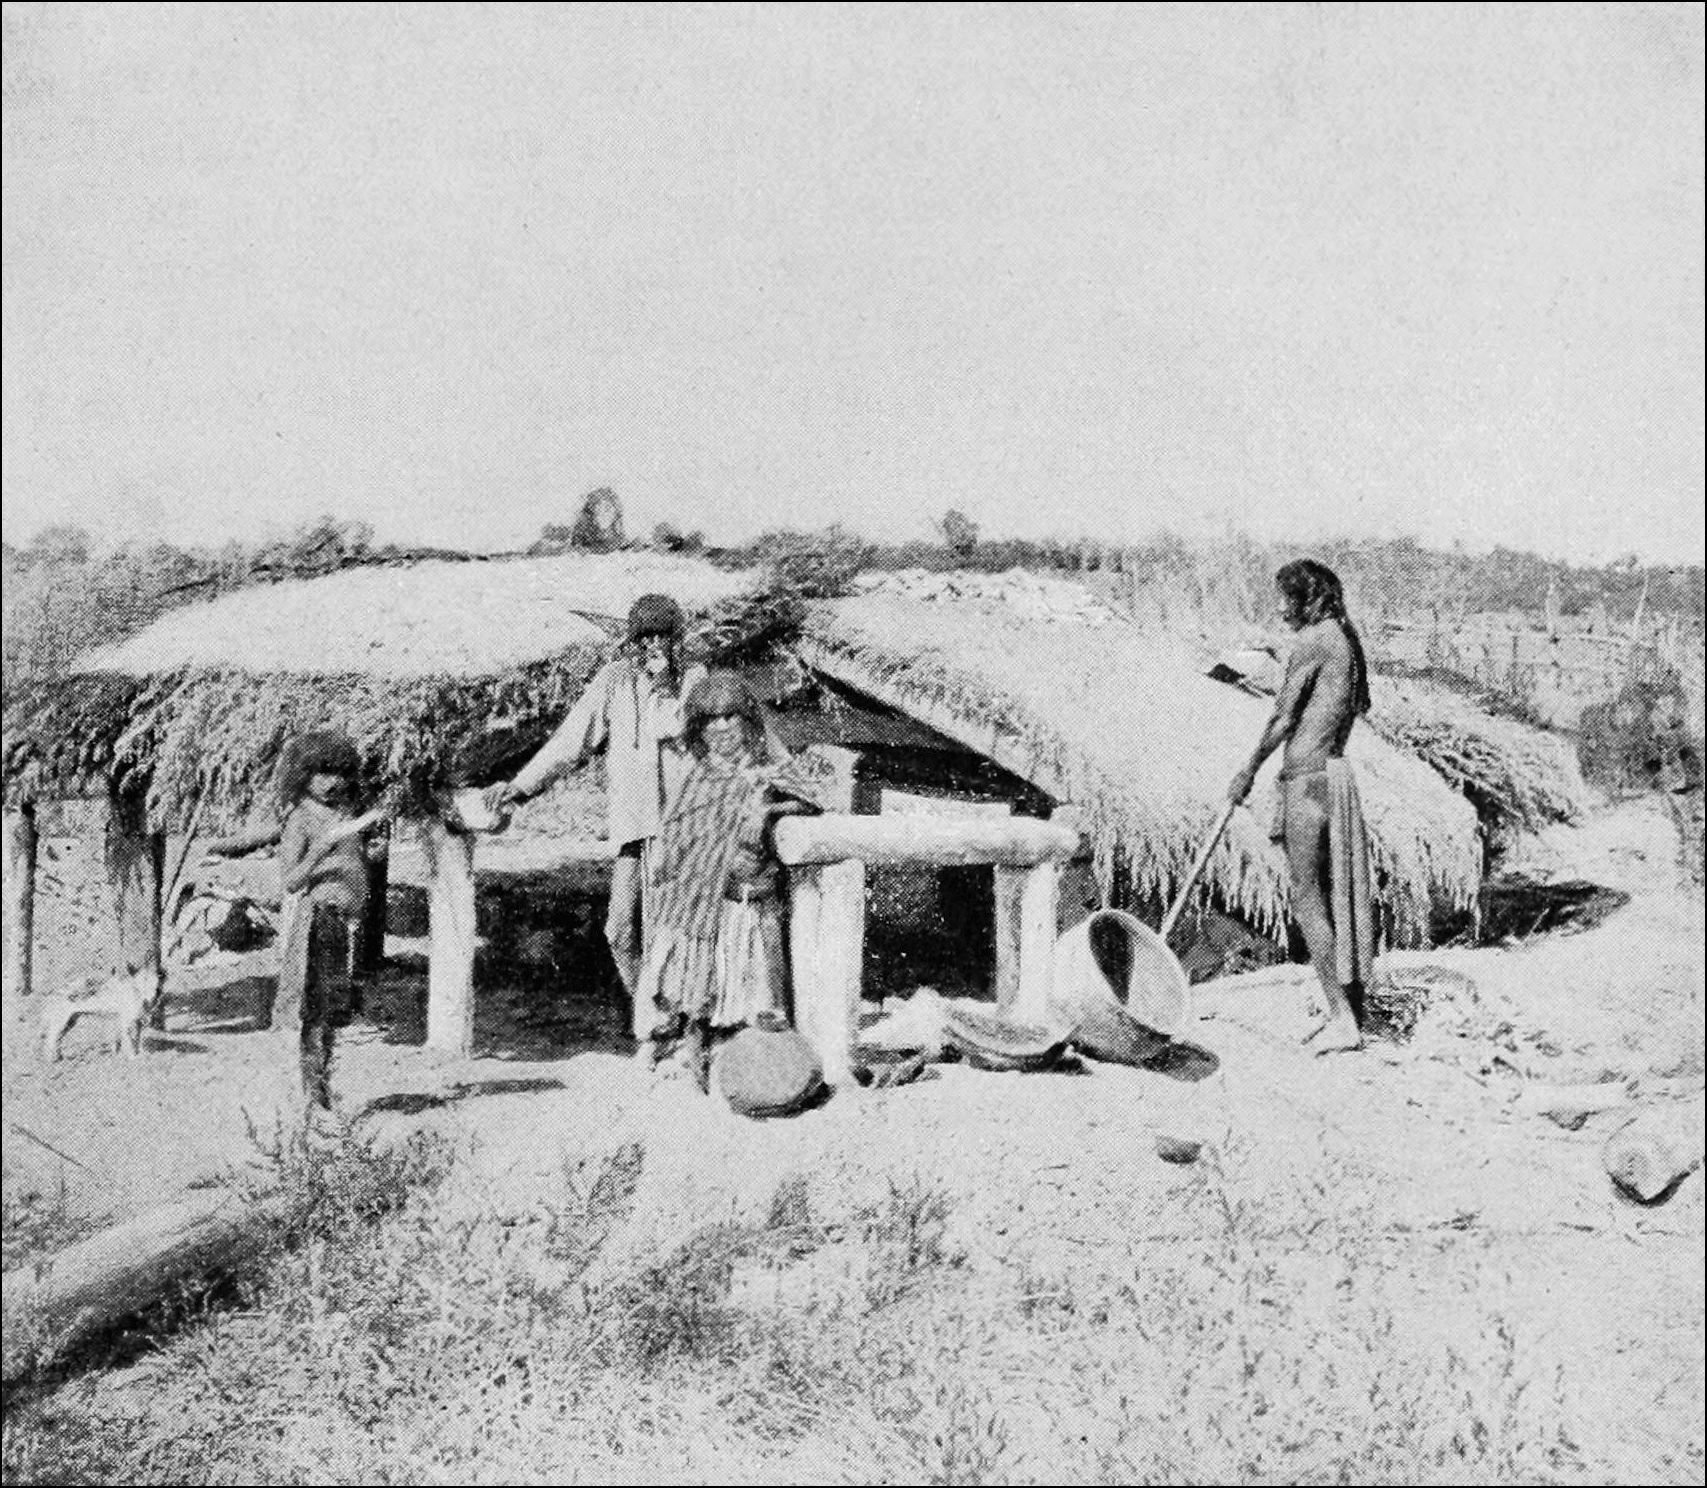 Pictures of Mojave Indian Houses http://commons.wikimedia.org/wiki/File:PSM_V41_D821_House_style_built_by_mojave_indians_of_arizona.jpg